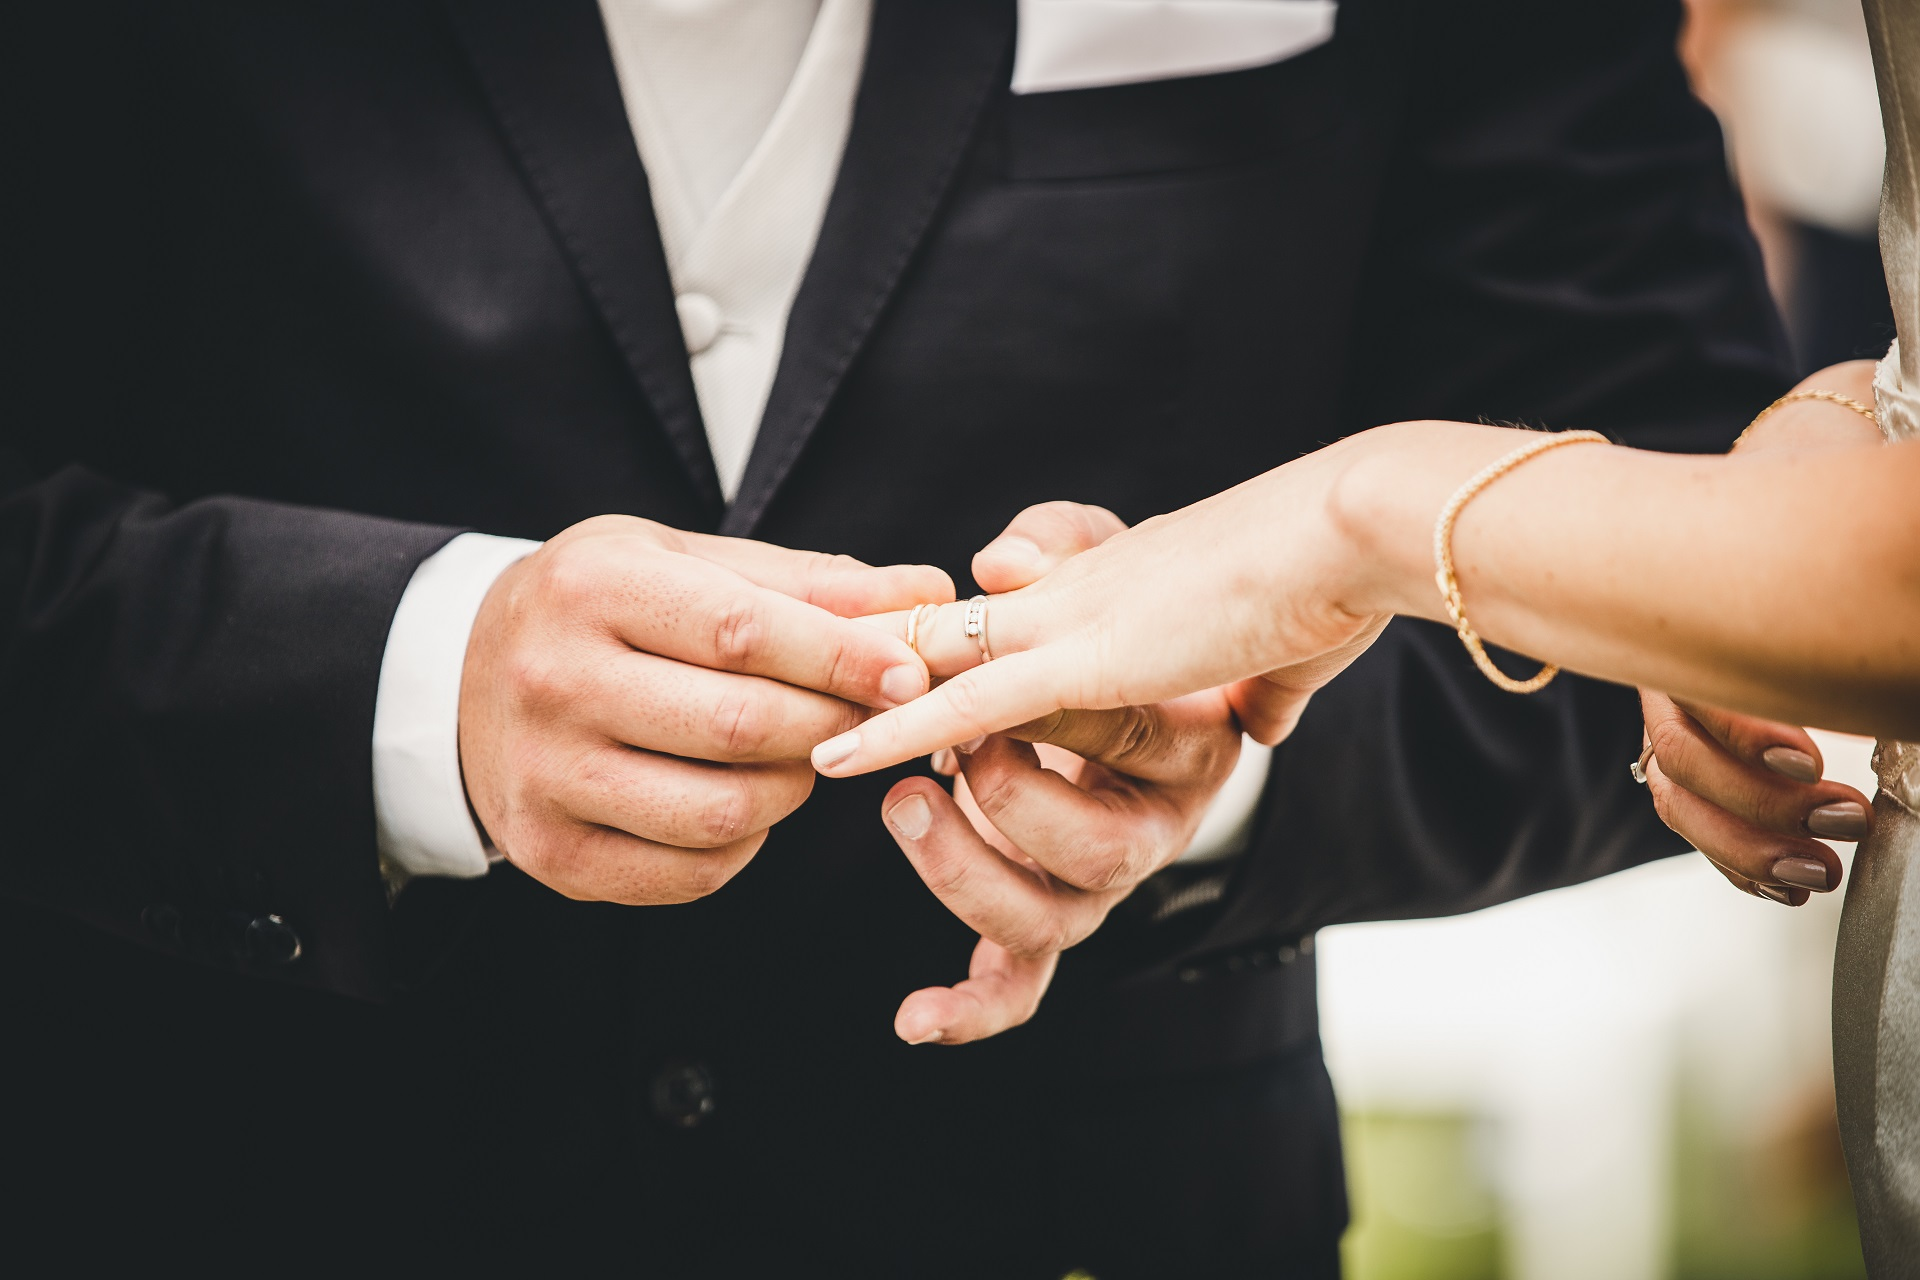 Trebaseleghe, Padua, Italy Outdoor Elopement Ceremony Detail Image | Finally, the bride and groom get to exchange rings